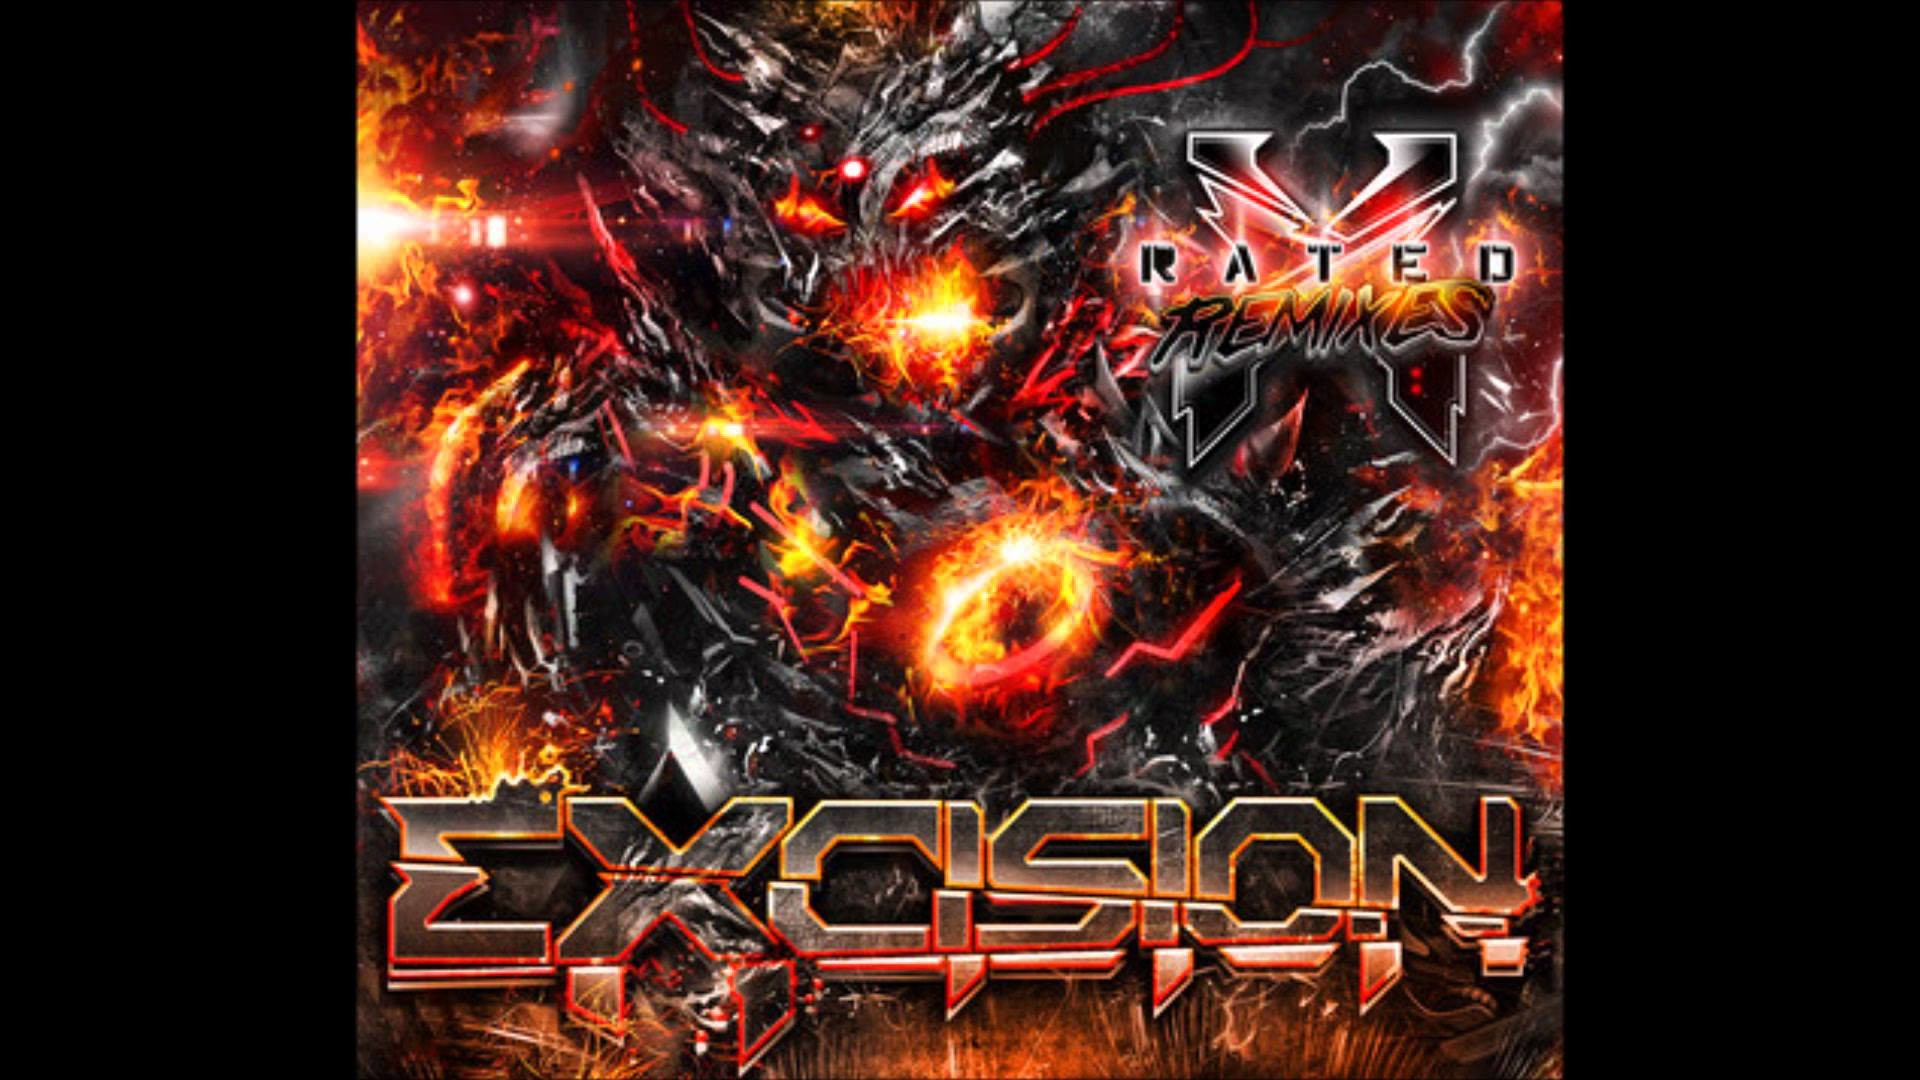 1920x1080 Wallpapers For > Excision Wallpaper